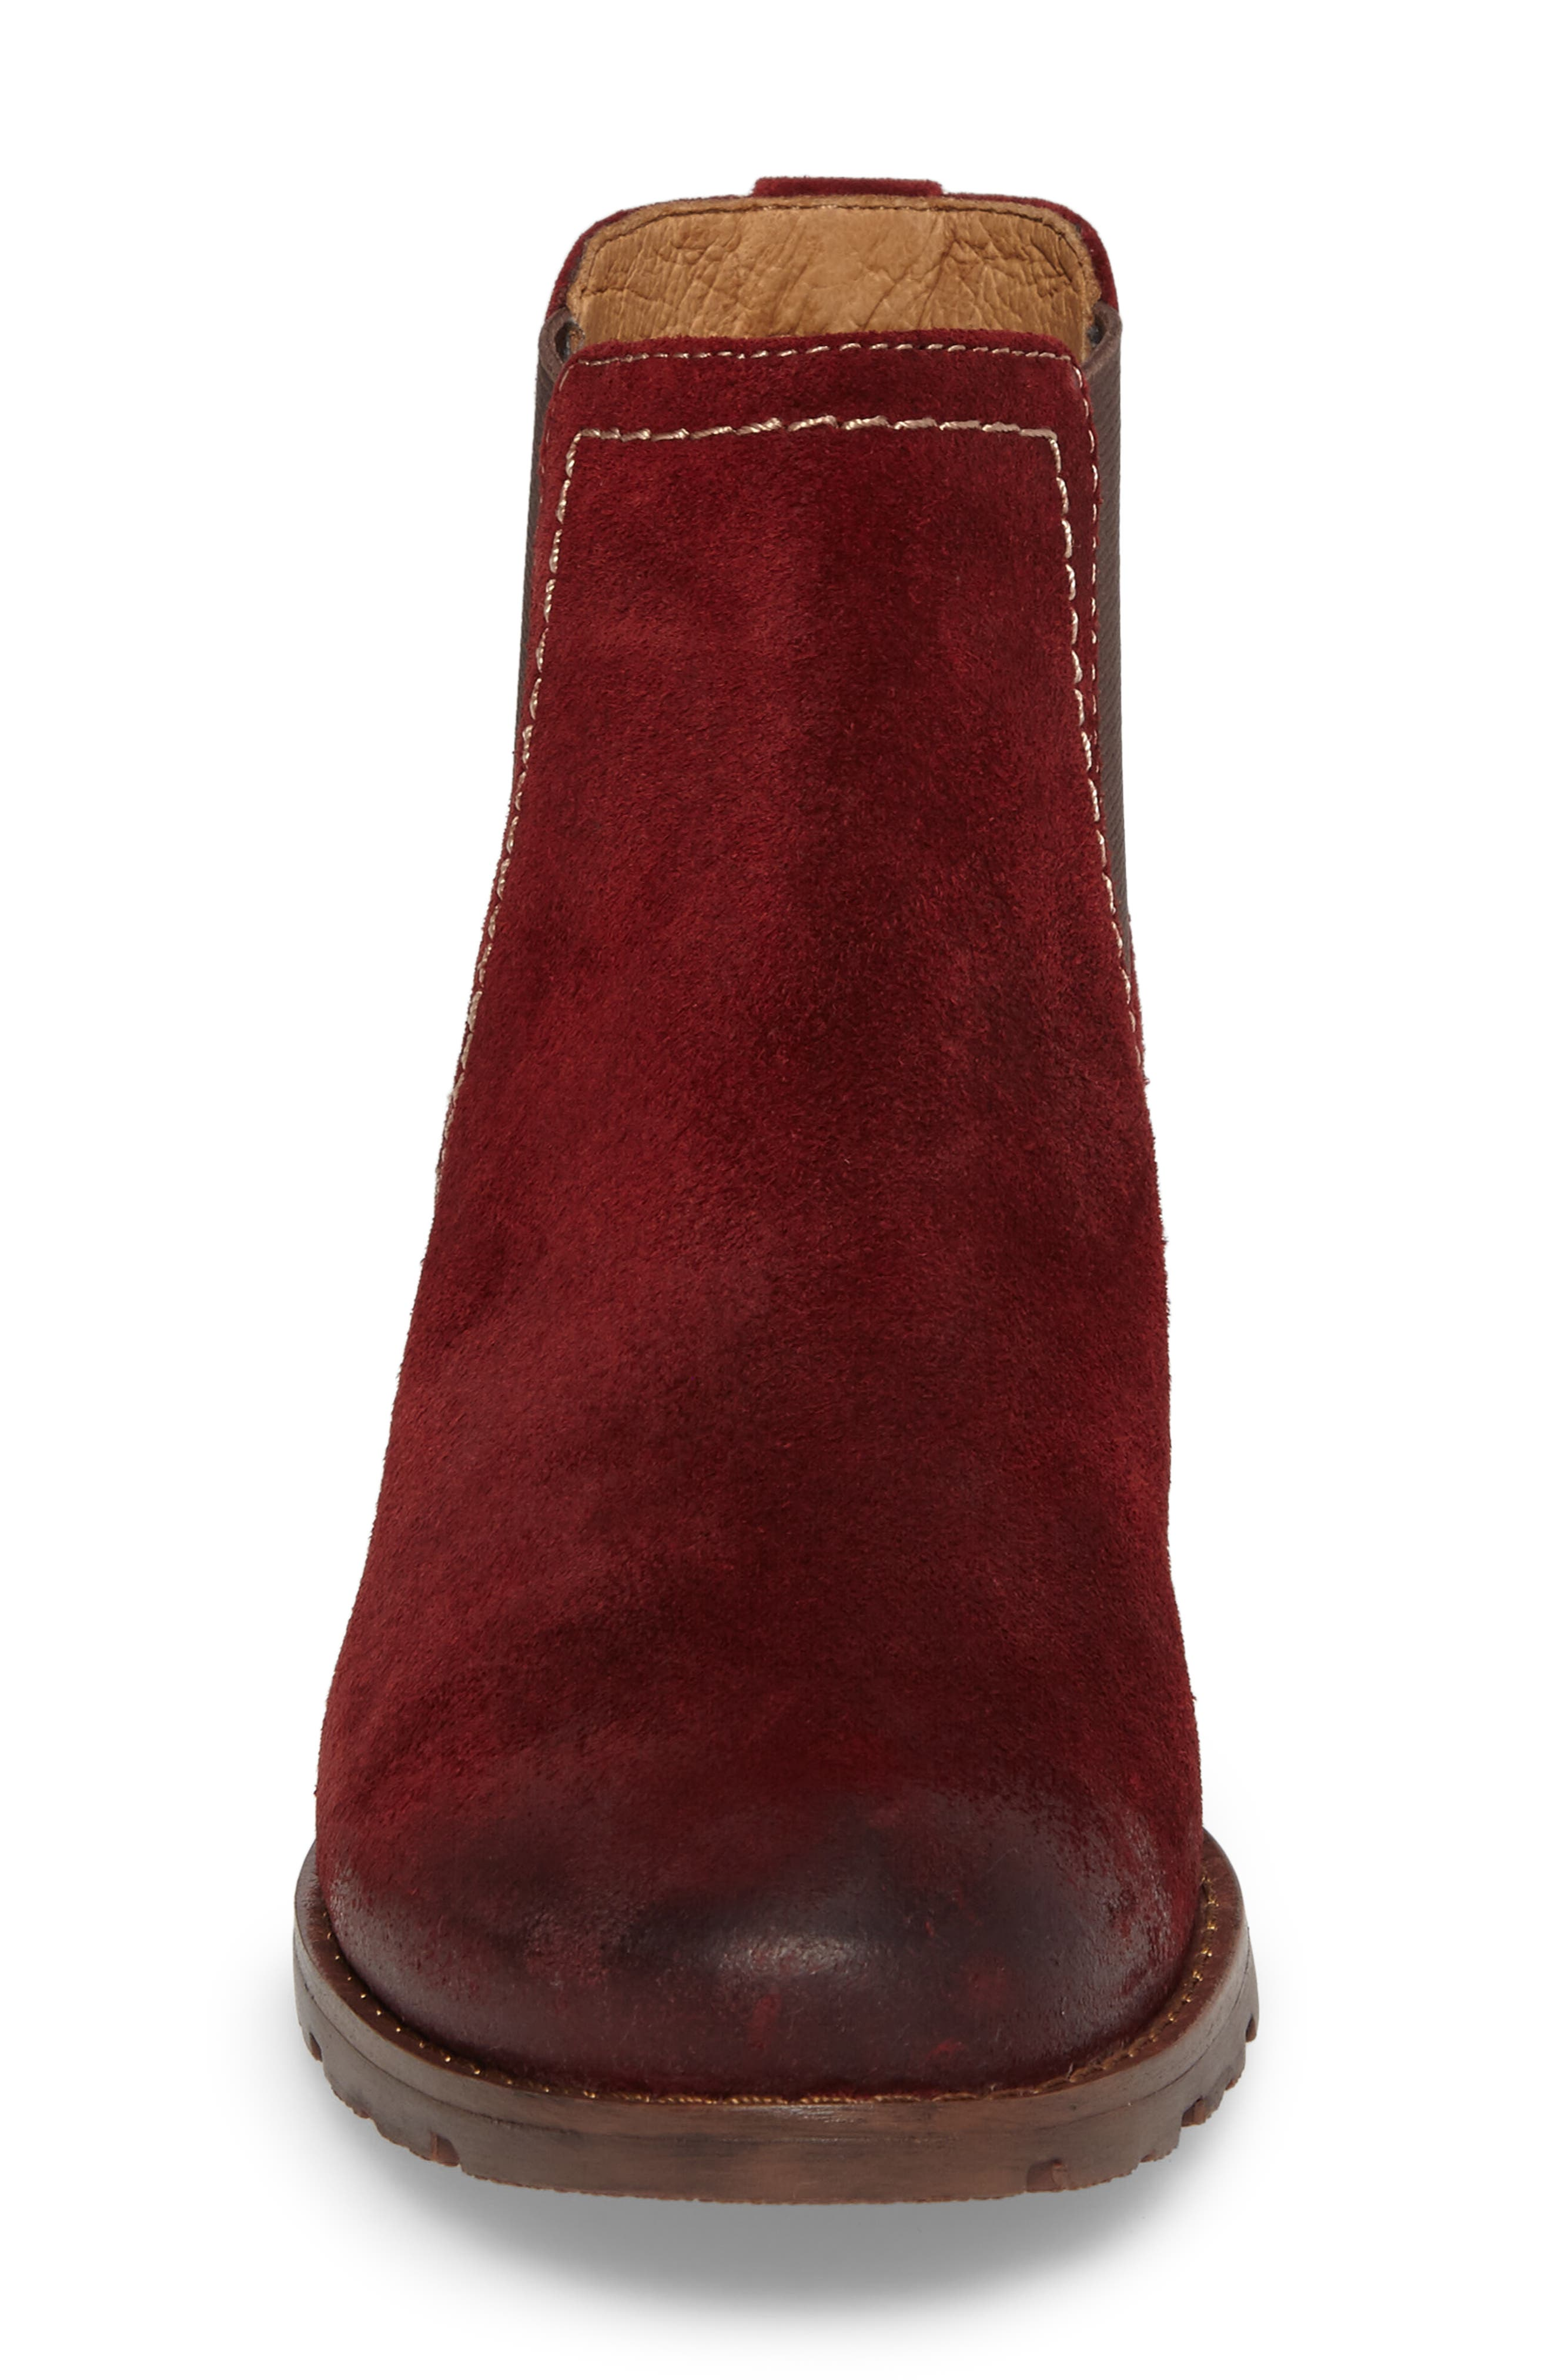 'Selby' Chelsea Bootie,                             Alternate thumbnail 4, color,                             Bordo Suede